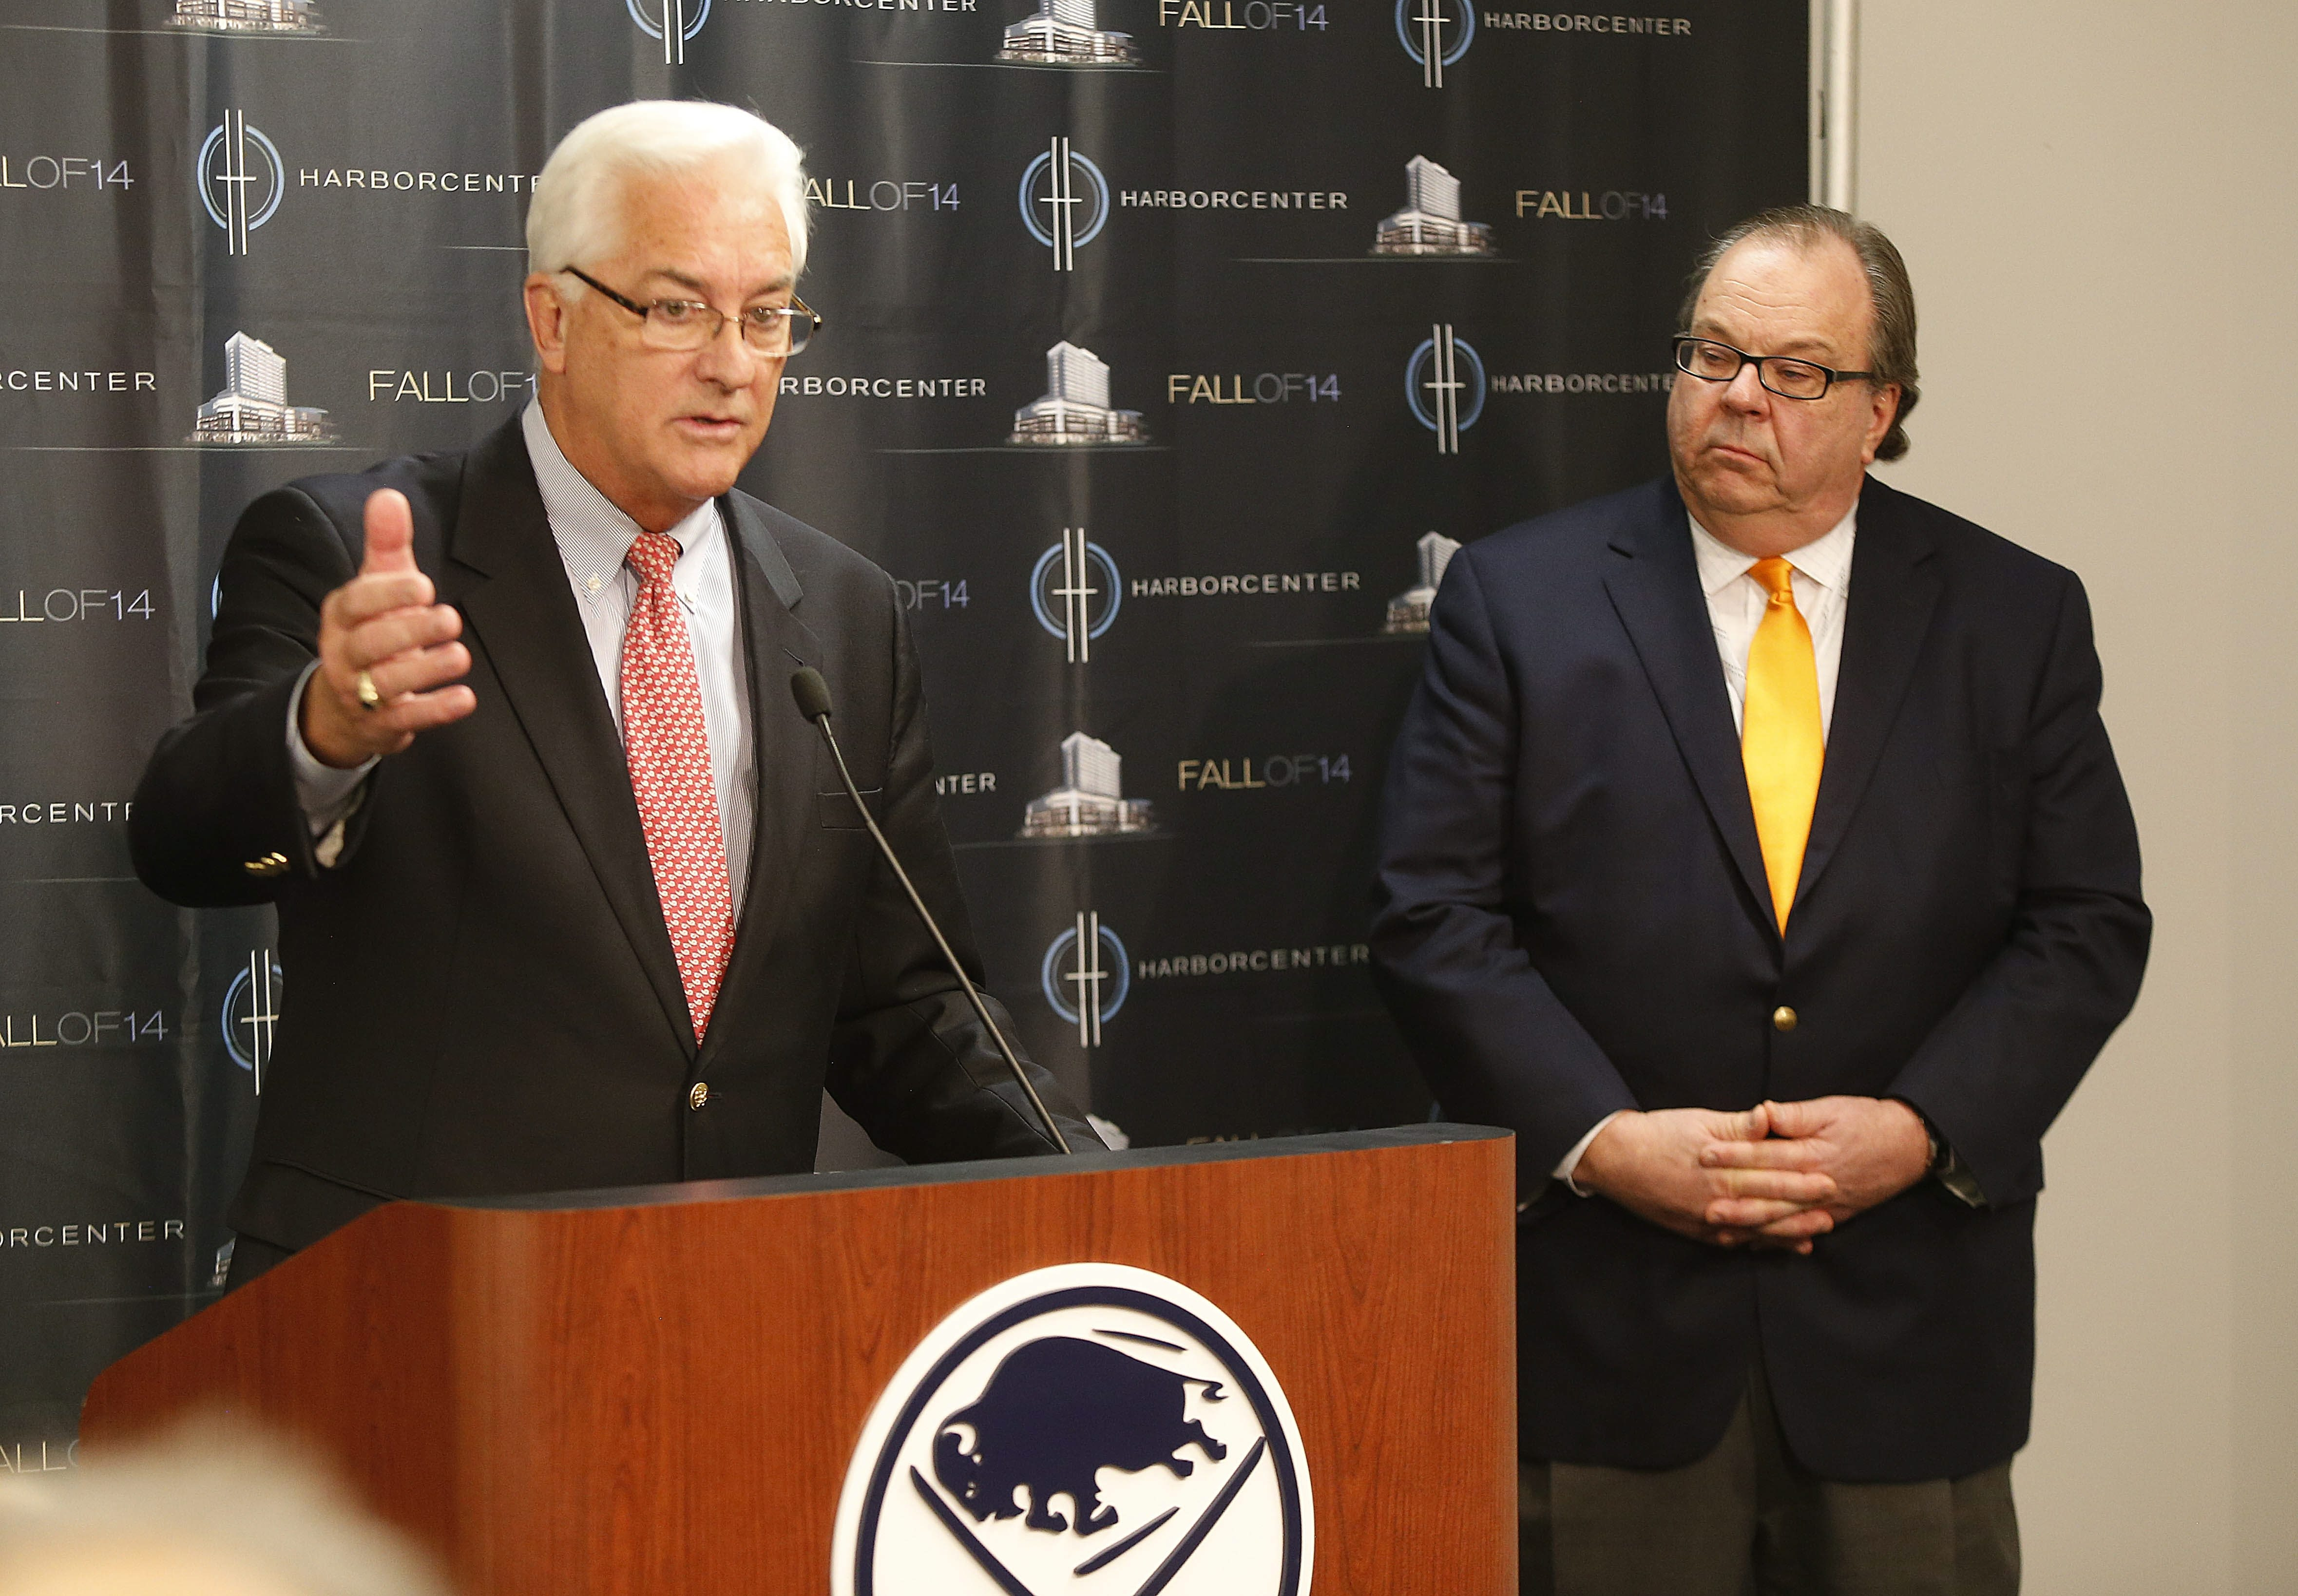 ECC President Jack F. Quinn Jr. makes a point at news conference as he and John R. Koelmel, chief of HarborCenter, explain plans.